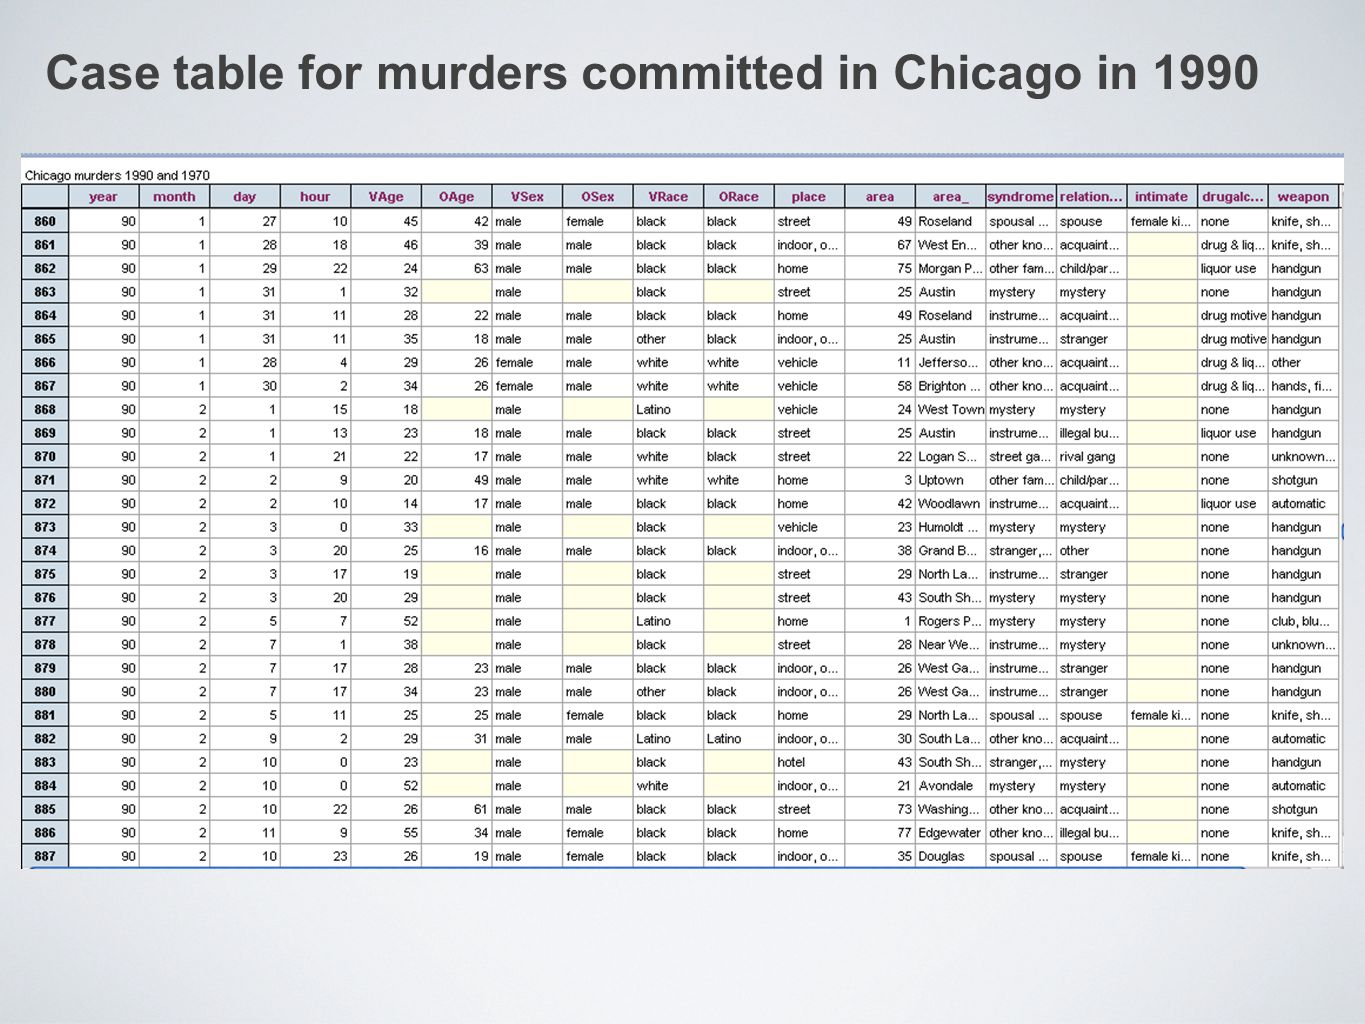 Case table for murders committed in Chicago in 1990